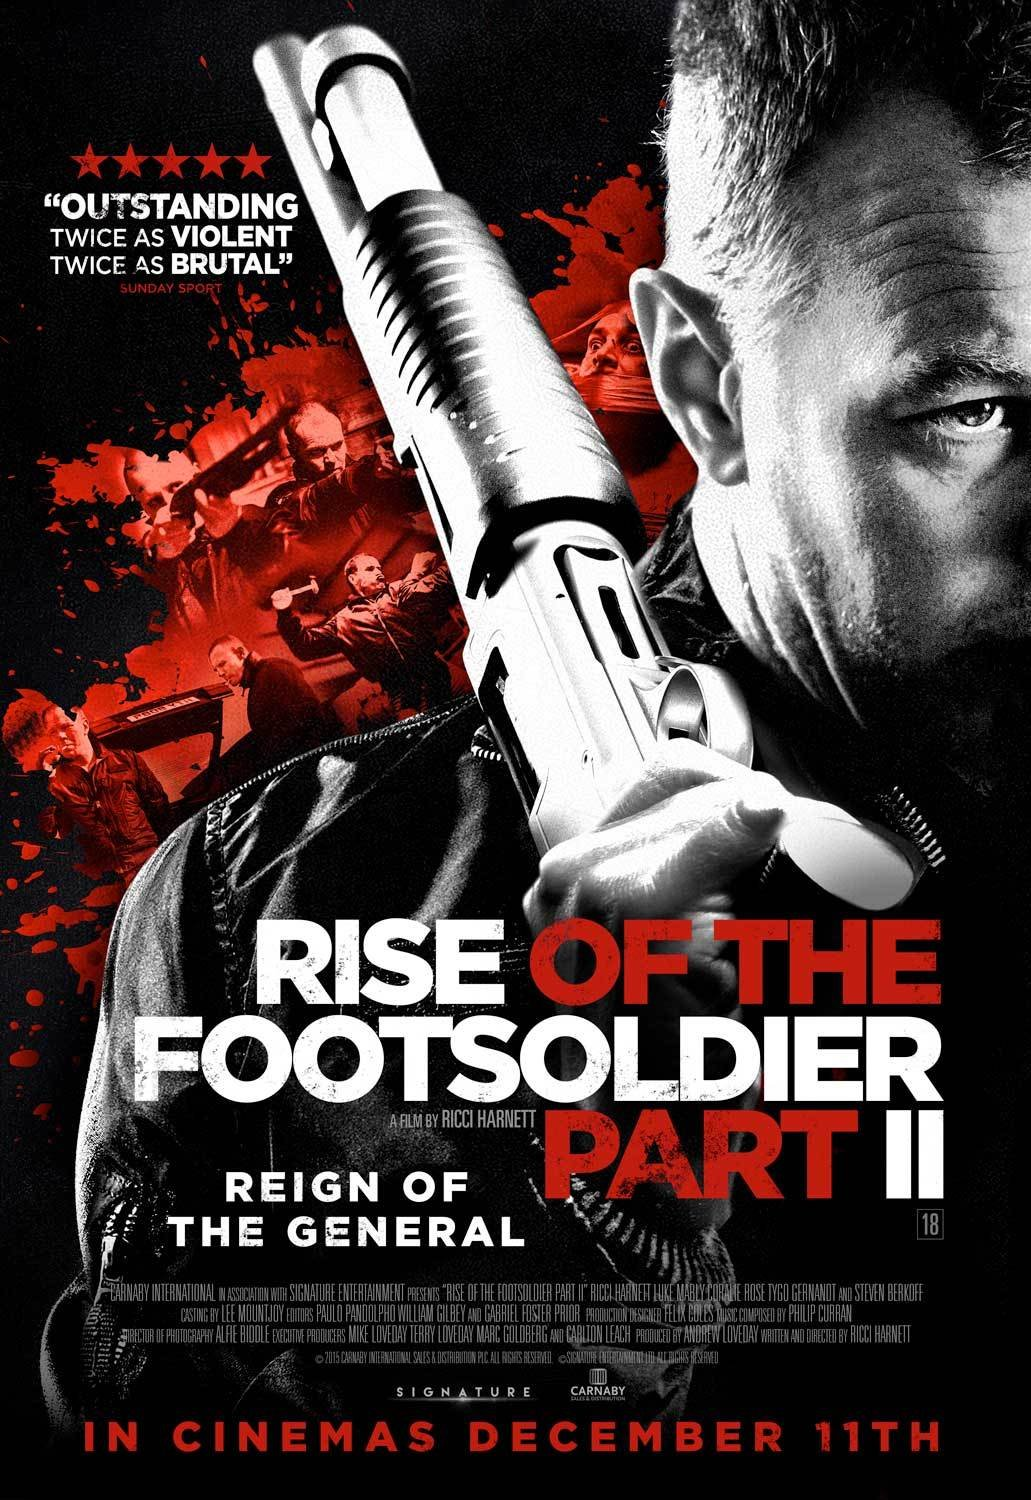 Rise of the Footsoldier Part II kapak